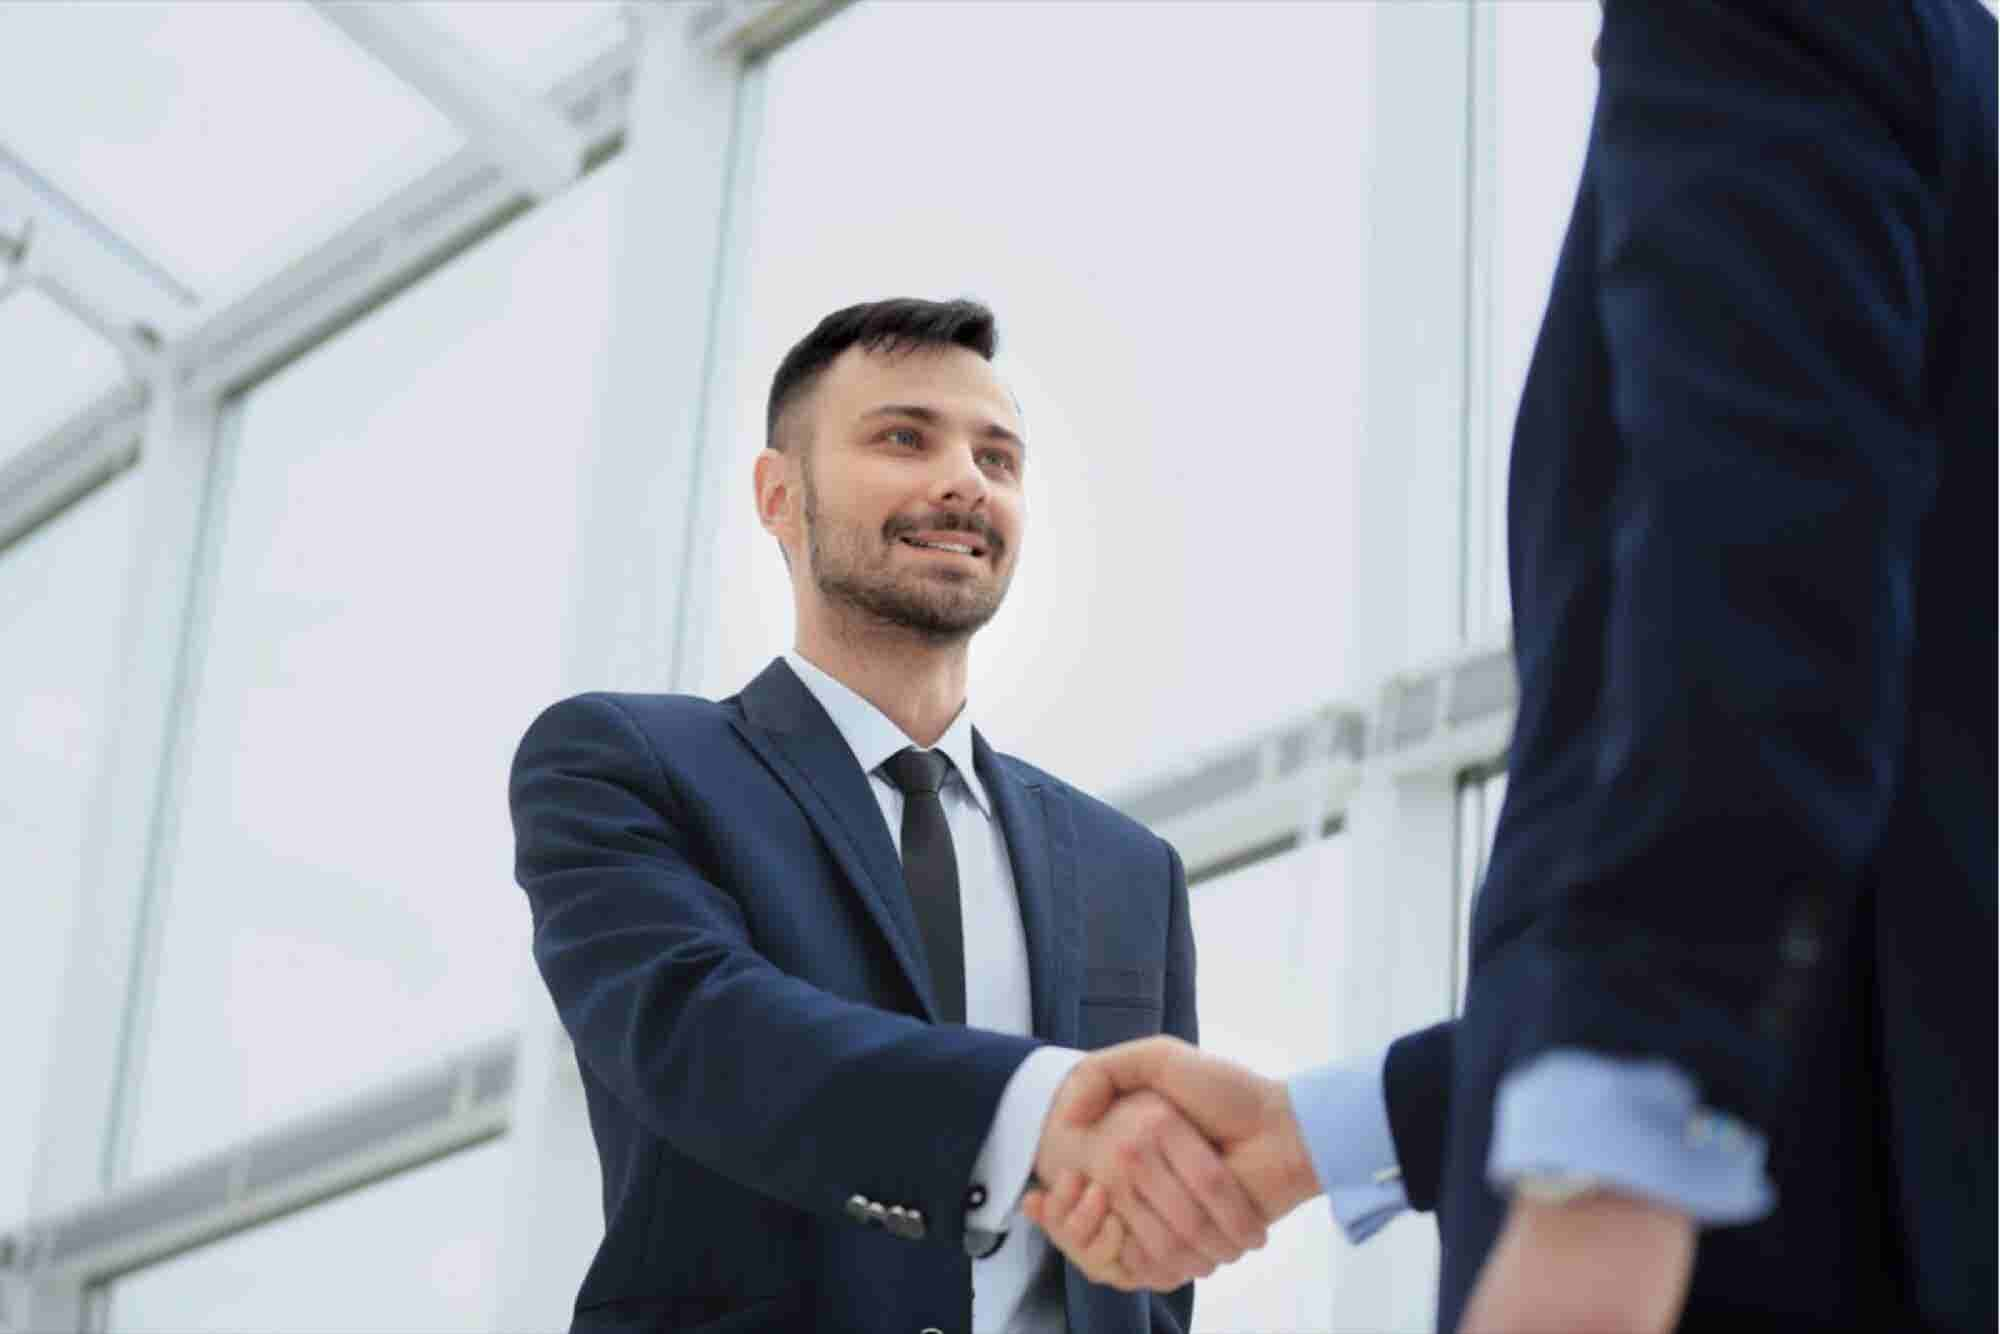 How Employee Benefits Can Help Your Company Attract Top Talent